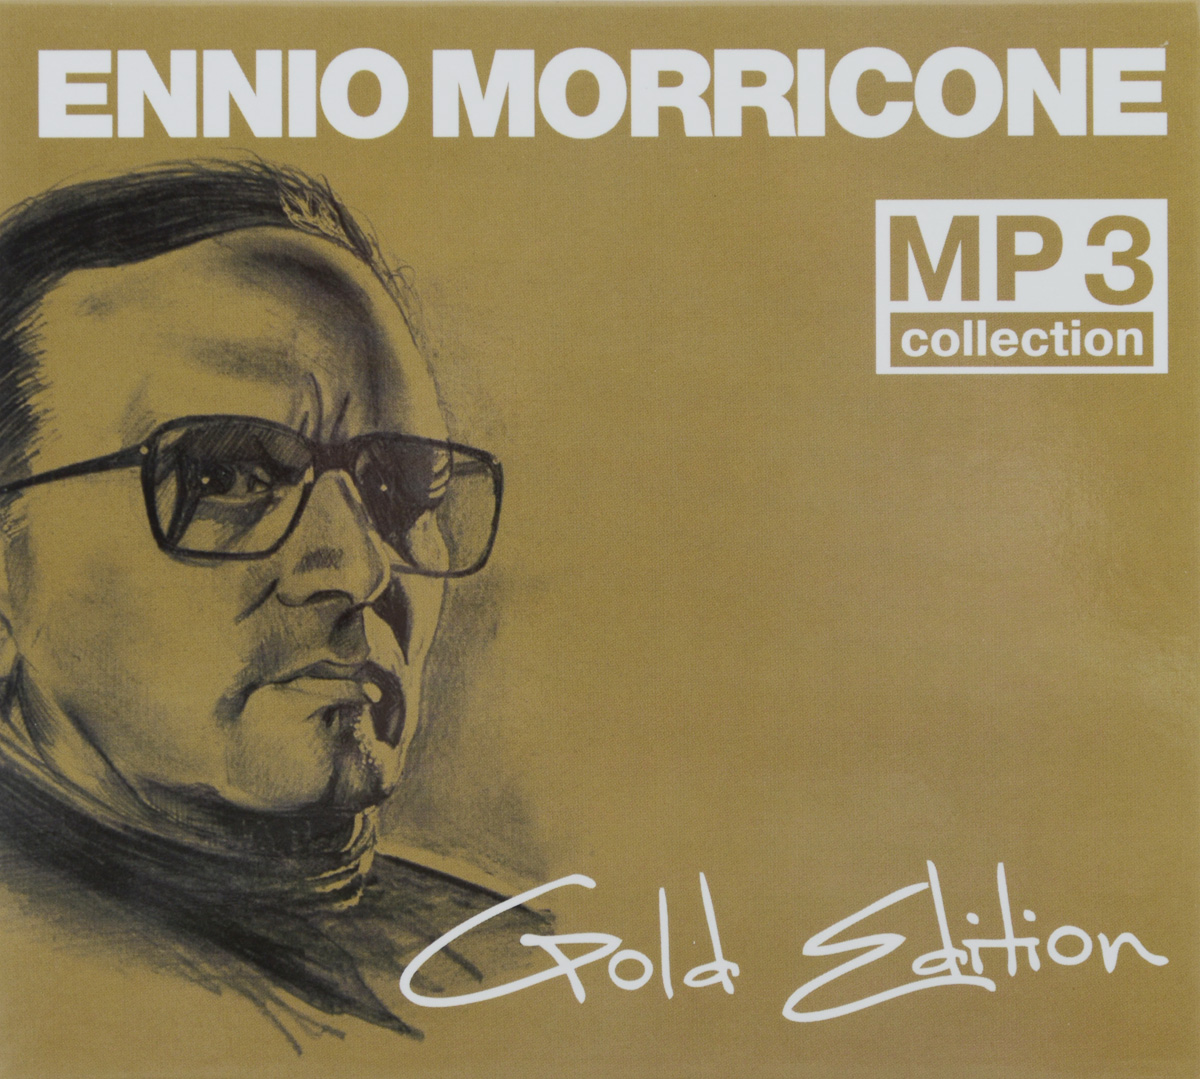 Эннио Морриконе,Il Novecento,Maddalena,Mosca Addio,La Cugina Ennio Morricone. MP3 Collection. Gold Edition (mp3) танцевальный рай 36 mp3